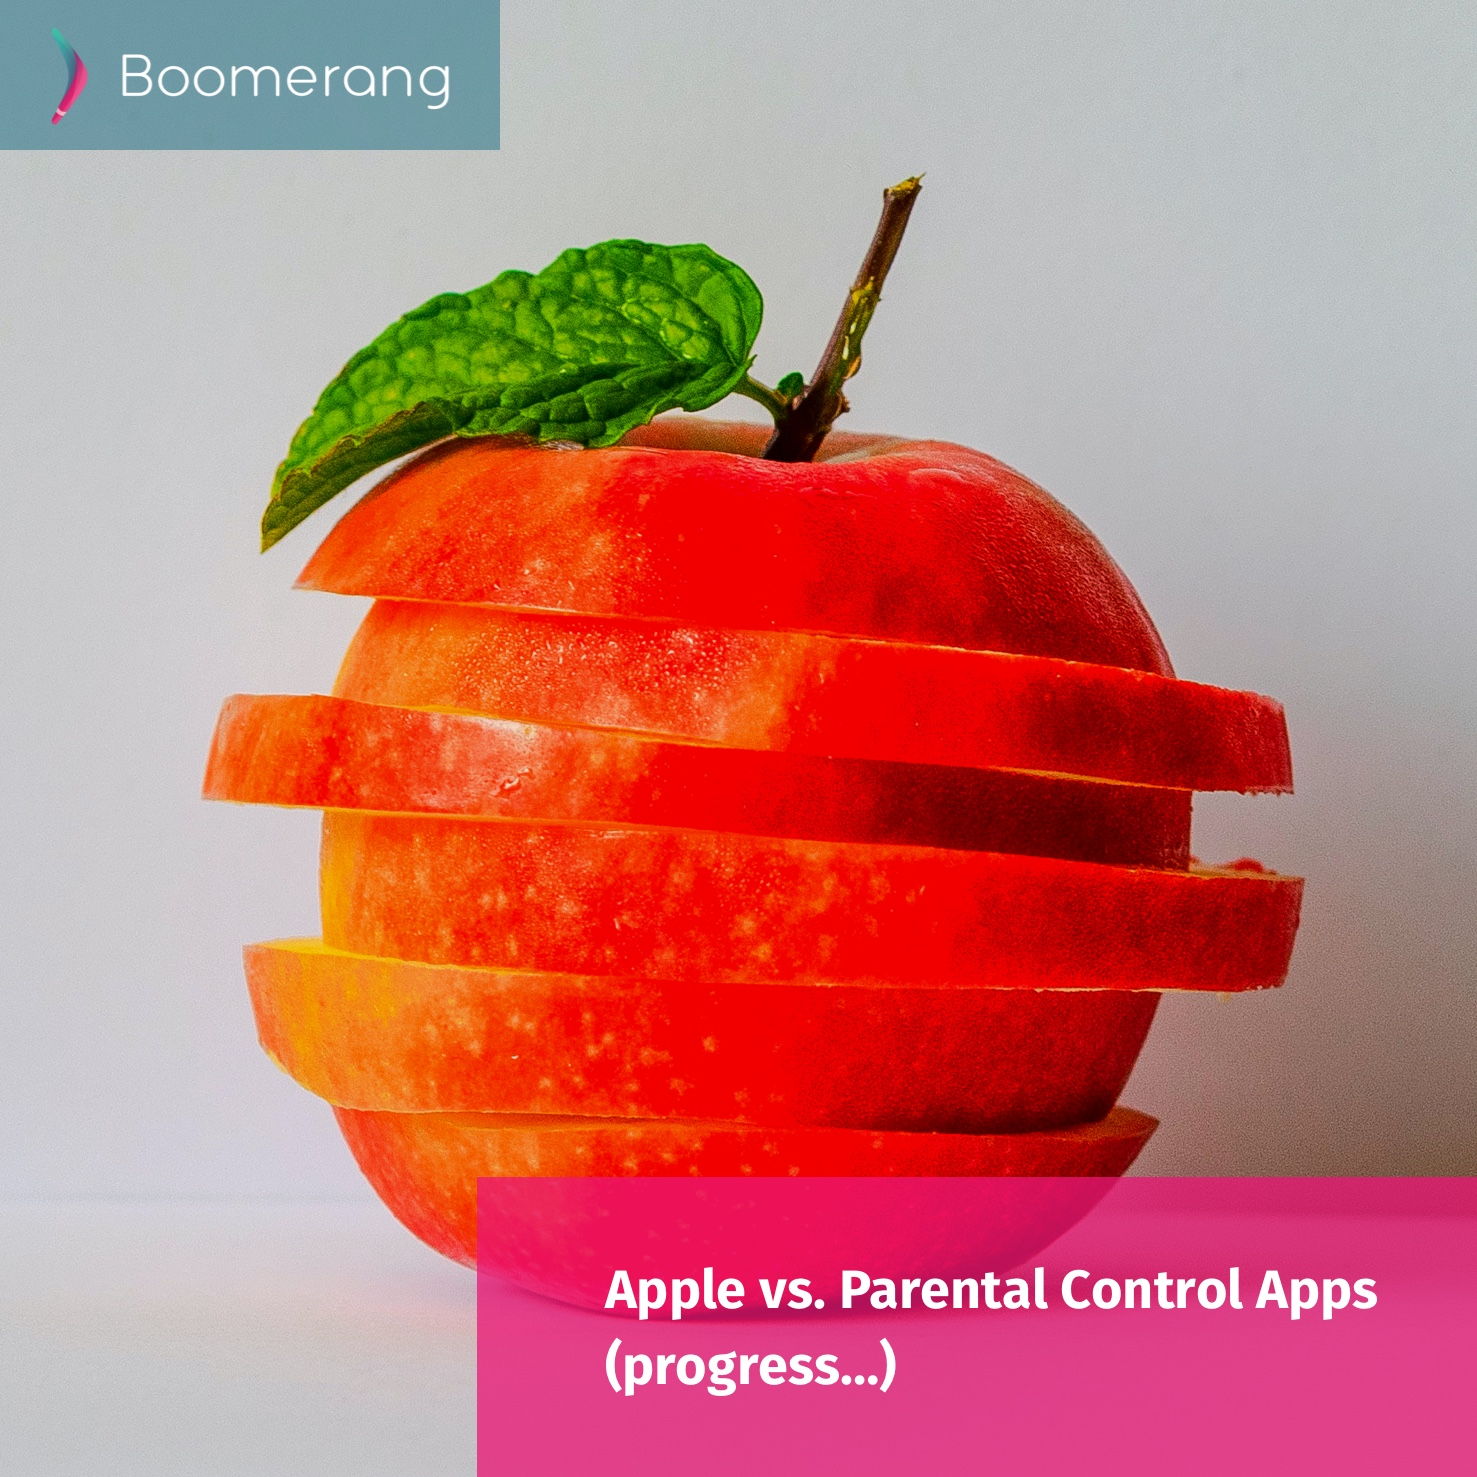 Apple vs. Parental Control Apps (progress)